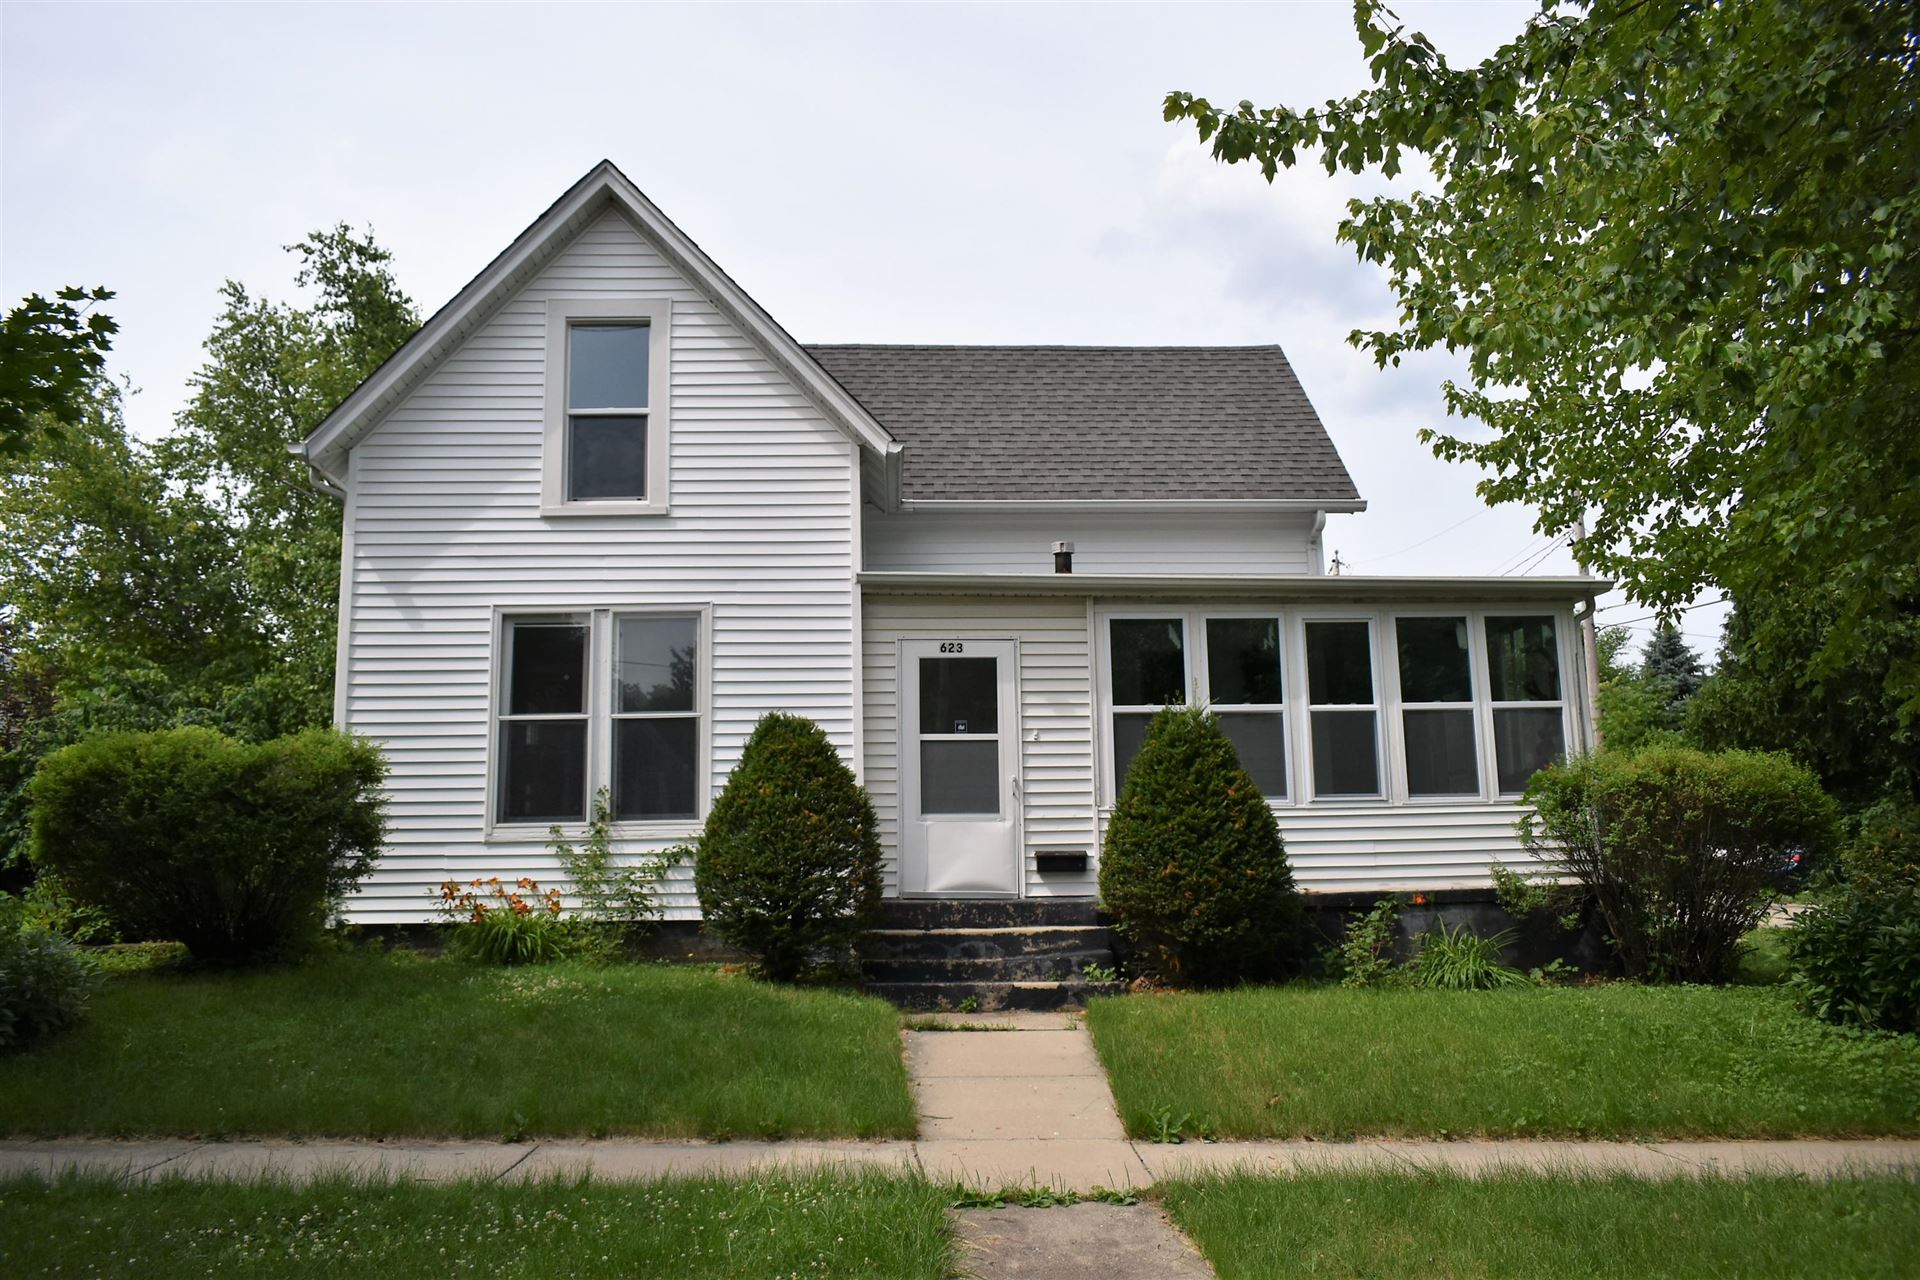 623 Dodge St, Lake Geneva, WI 53147 - #: 1697161